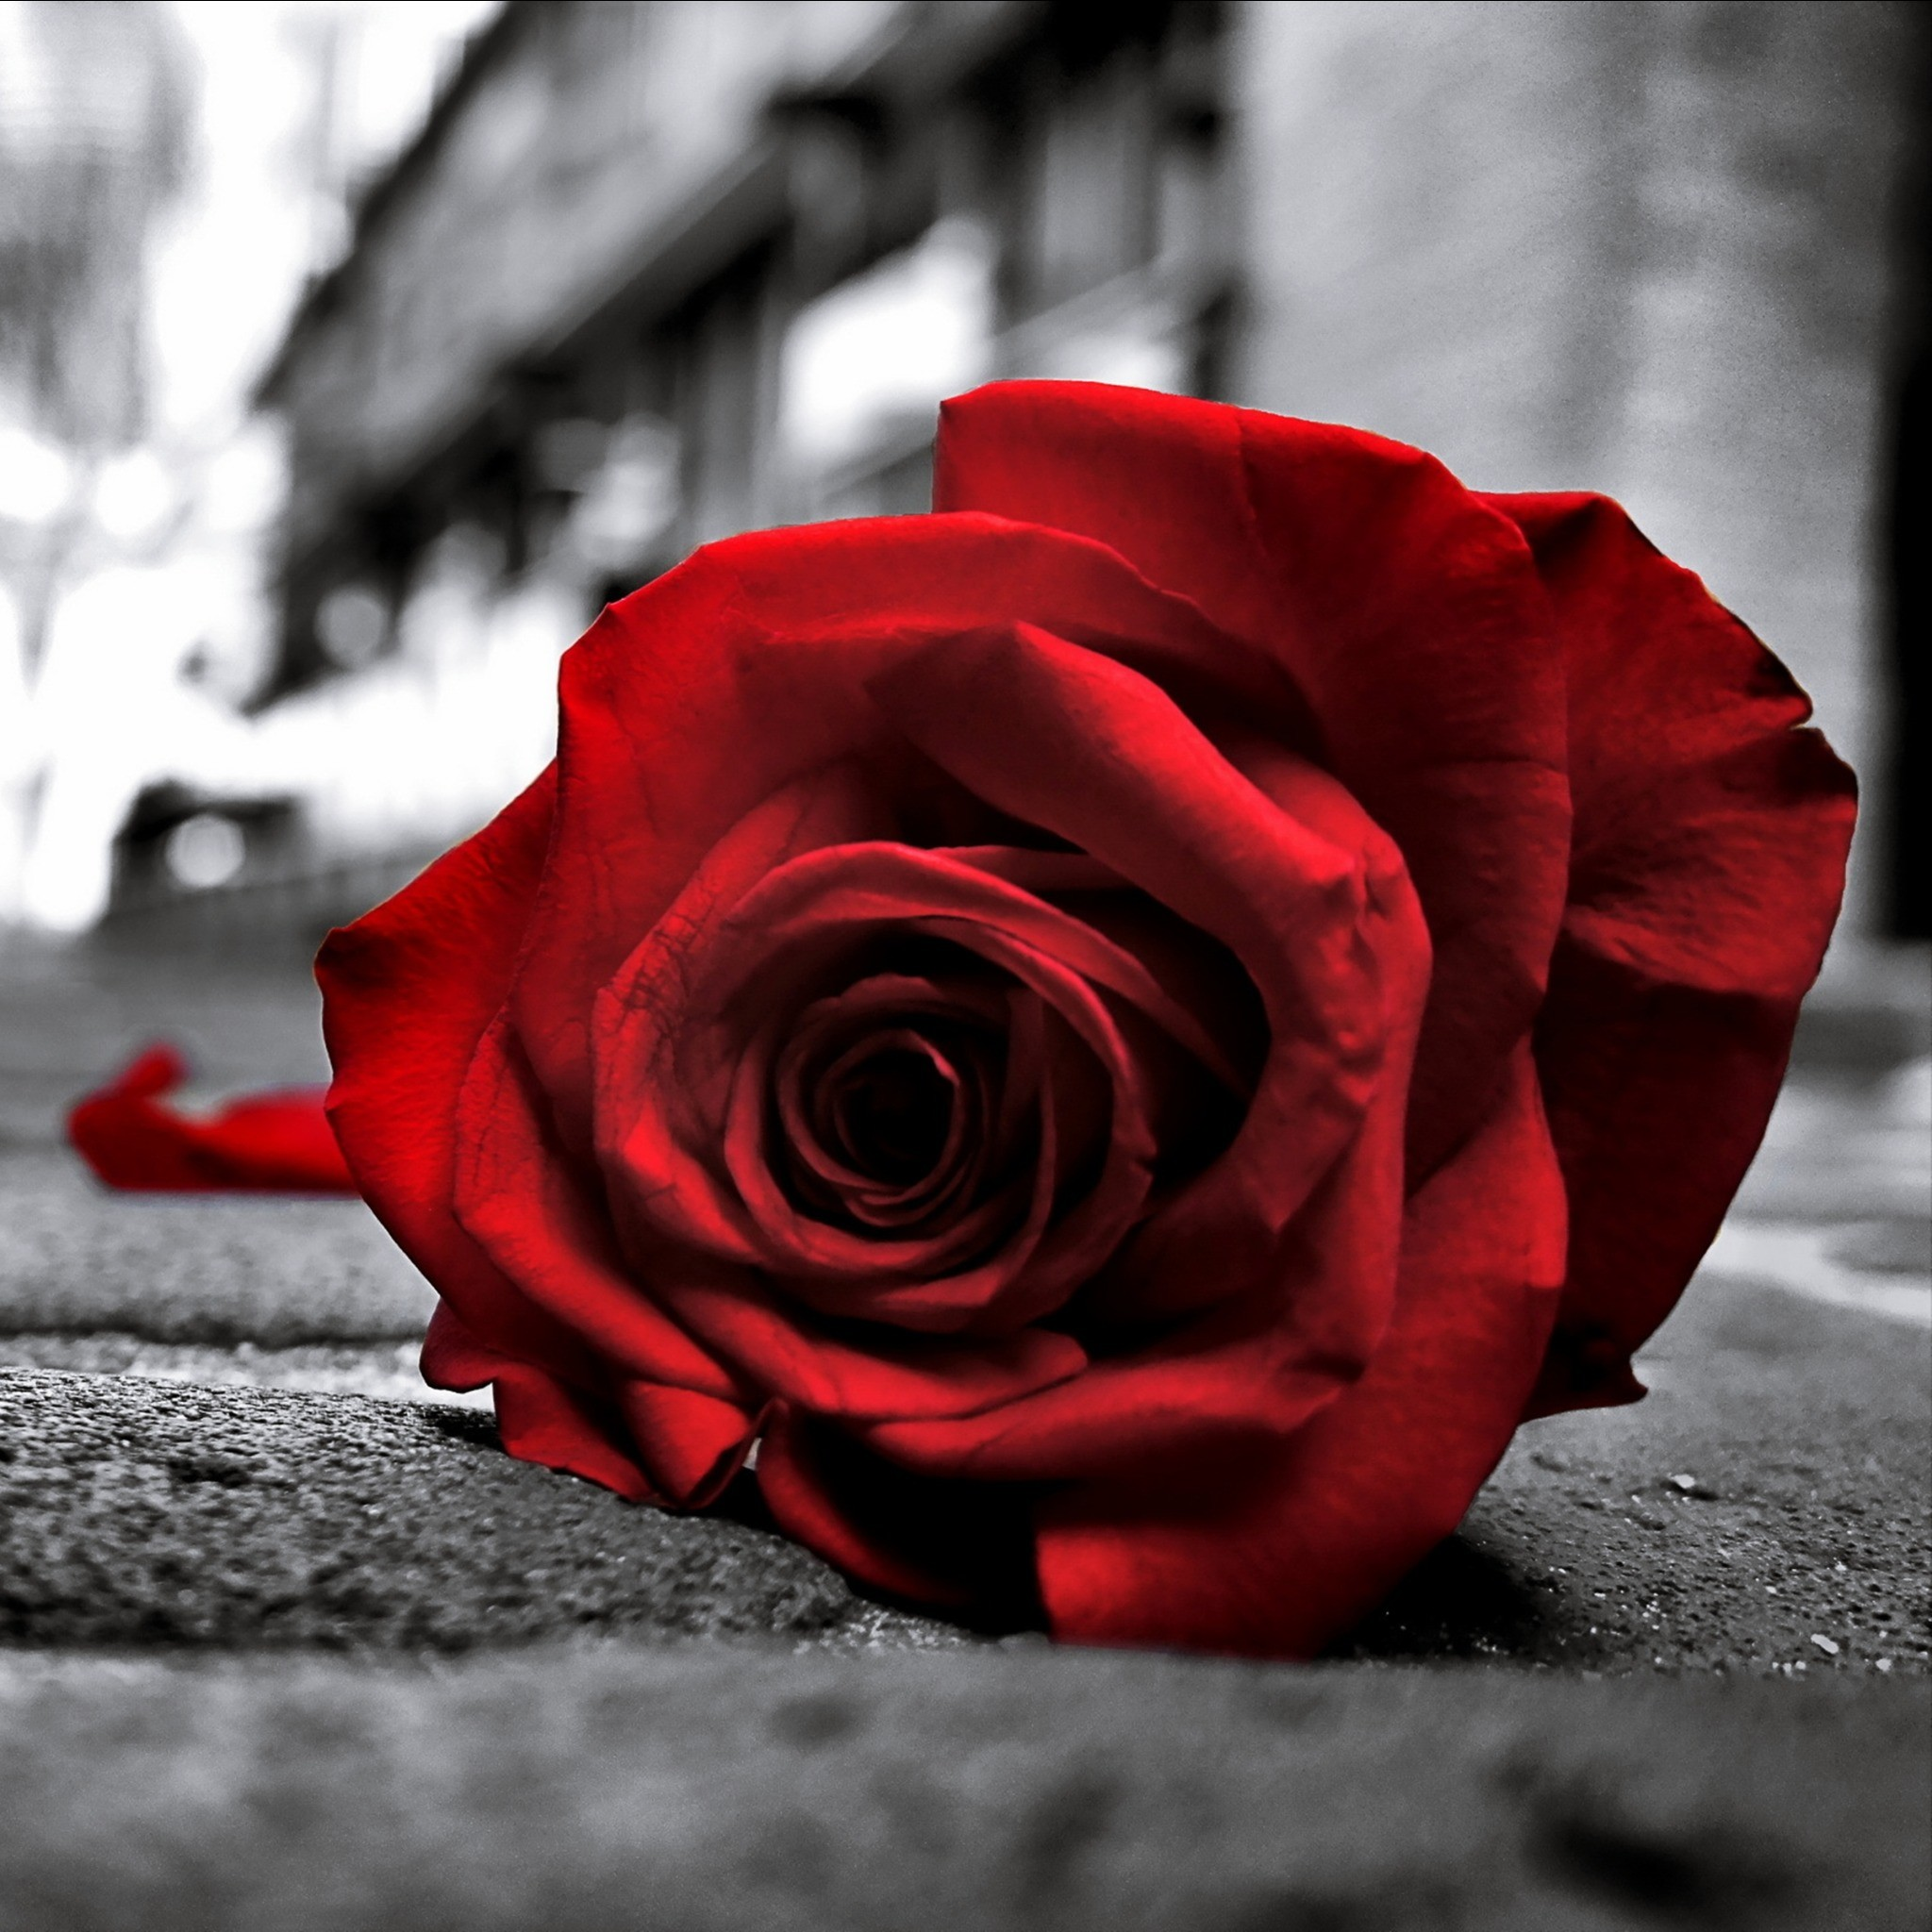 Black and red rose wallpaper 63 images - Black and red rose wallpaper ...